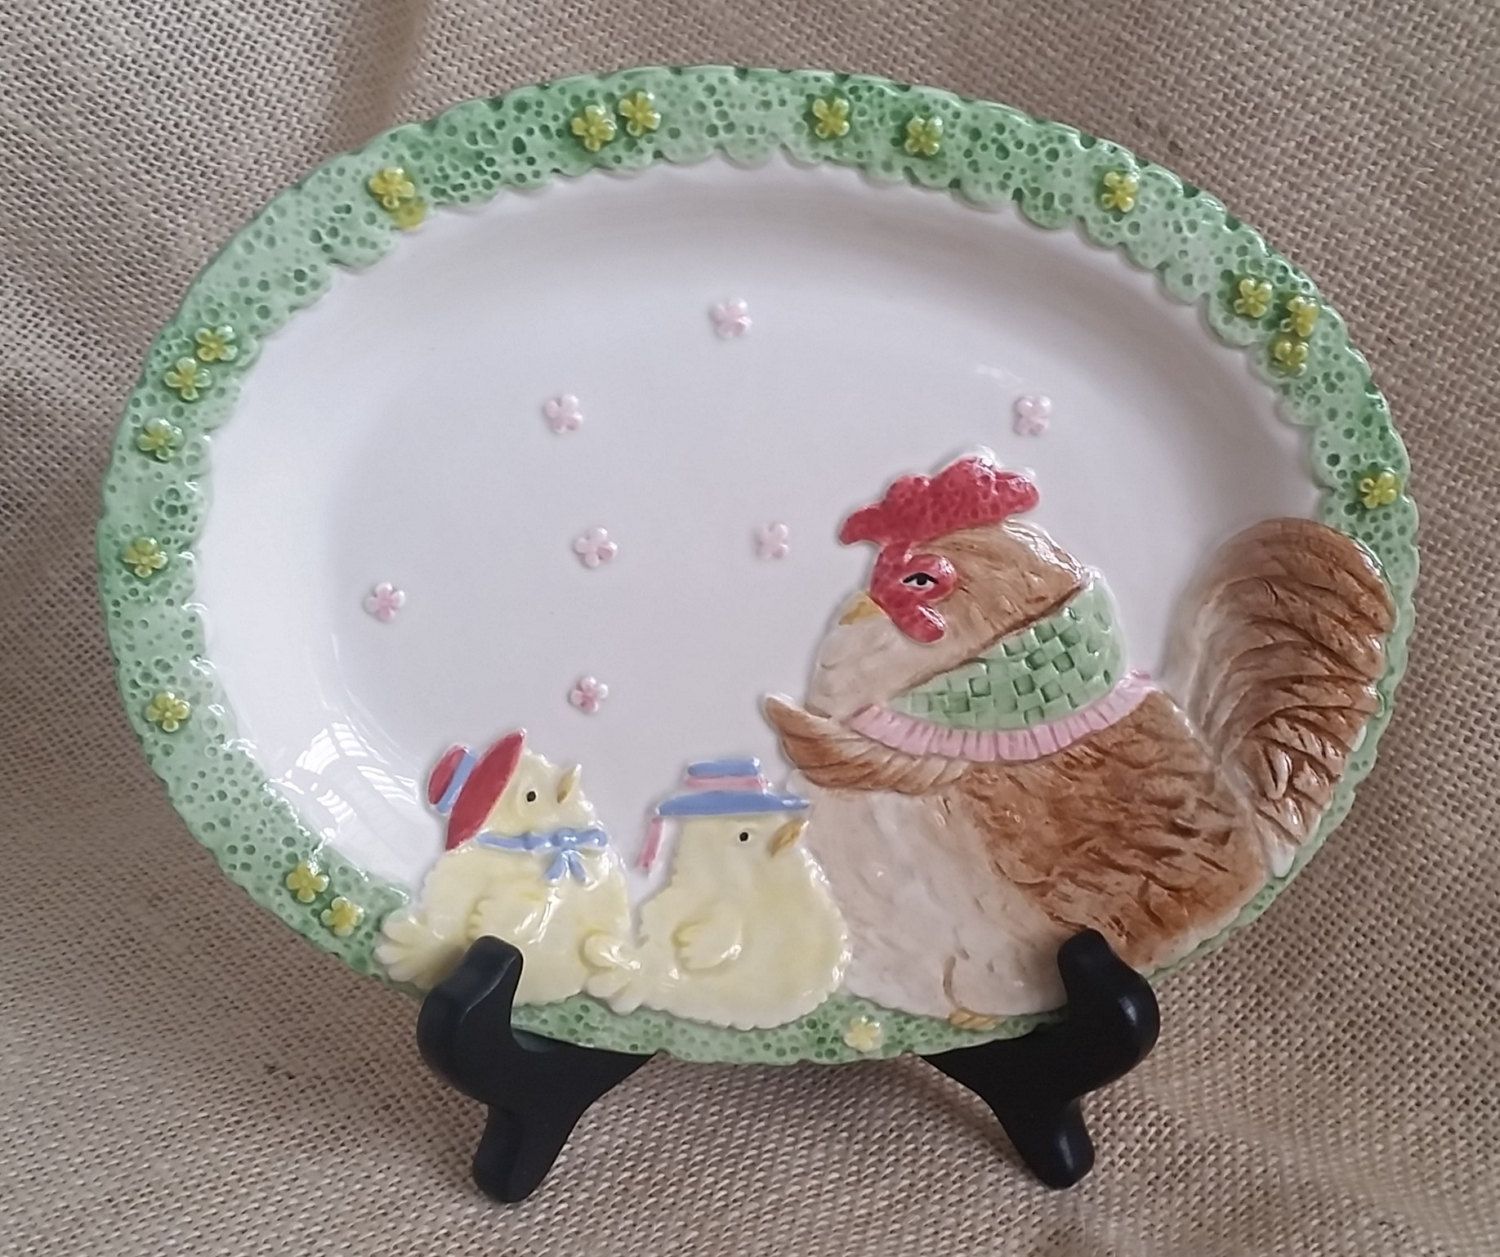 Fitz & Floyd Chicken Collectible Platter Vintage Fitz and Floyd 1987 Hen and Chicks Plate Spring Decor Easter Decor by RandomAmazing on Etsy